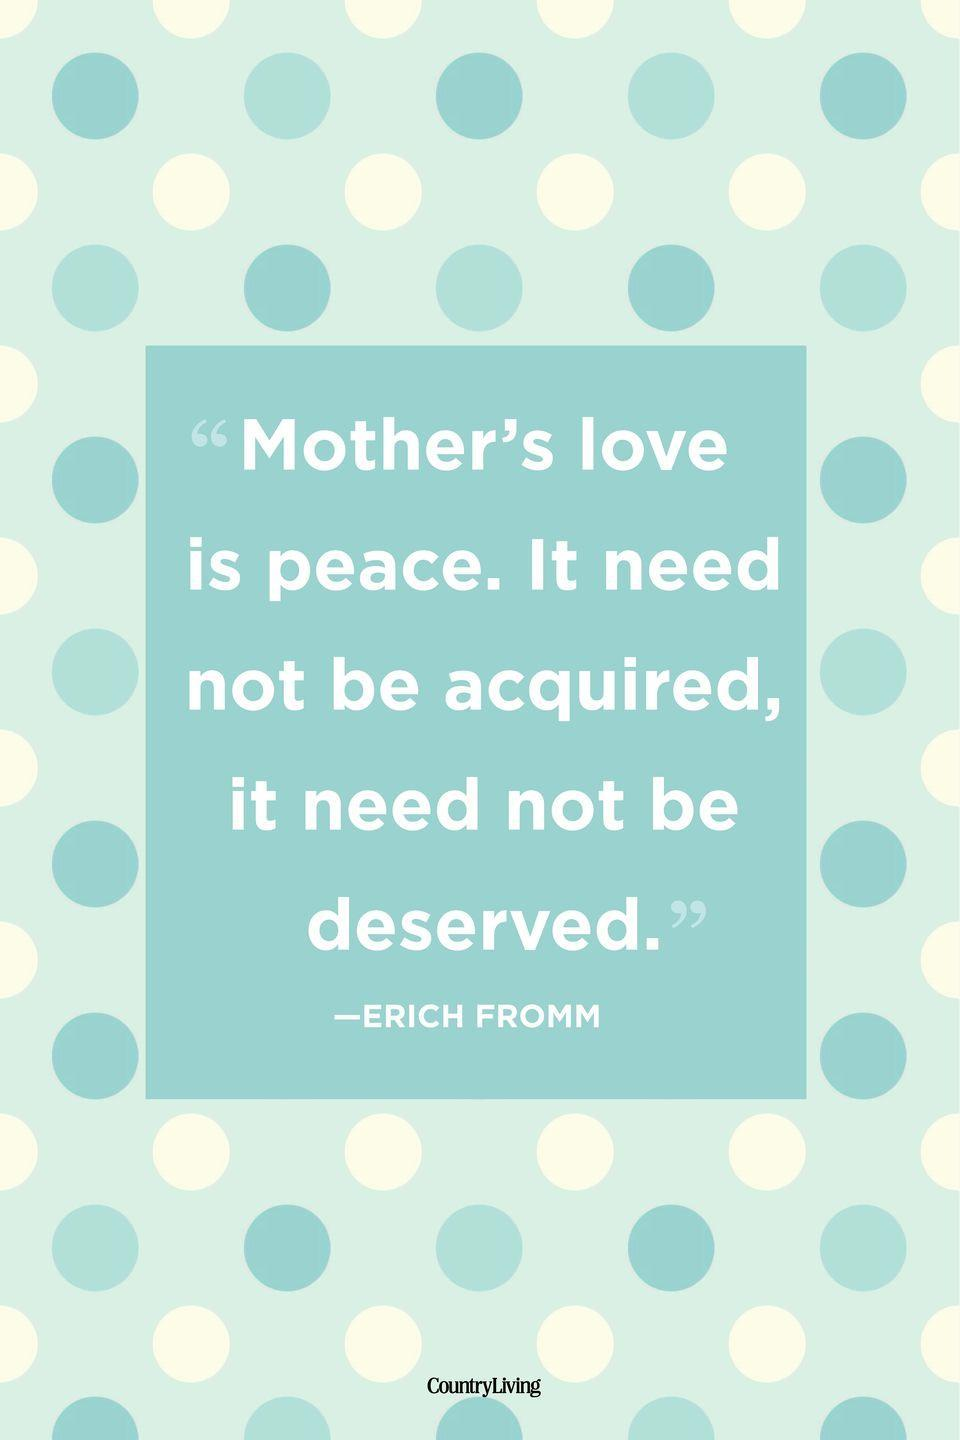 "<p>""Mother's love is peace. It need not be acquired, it need not be deserved.""</p>"